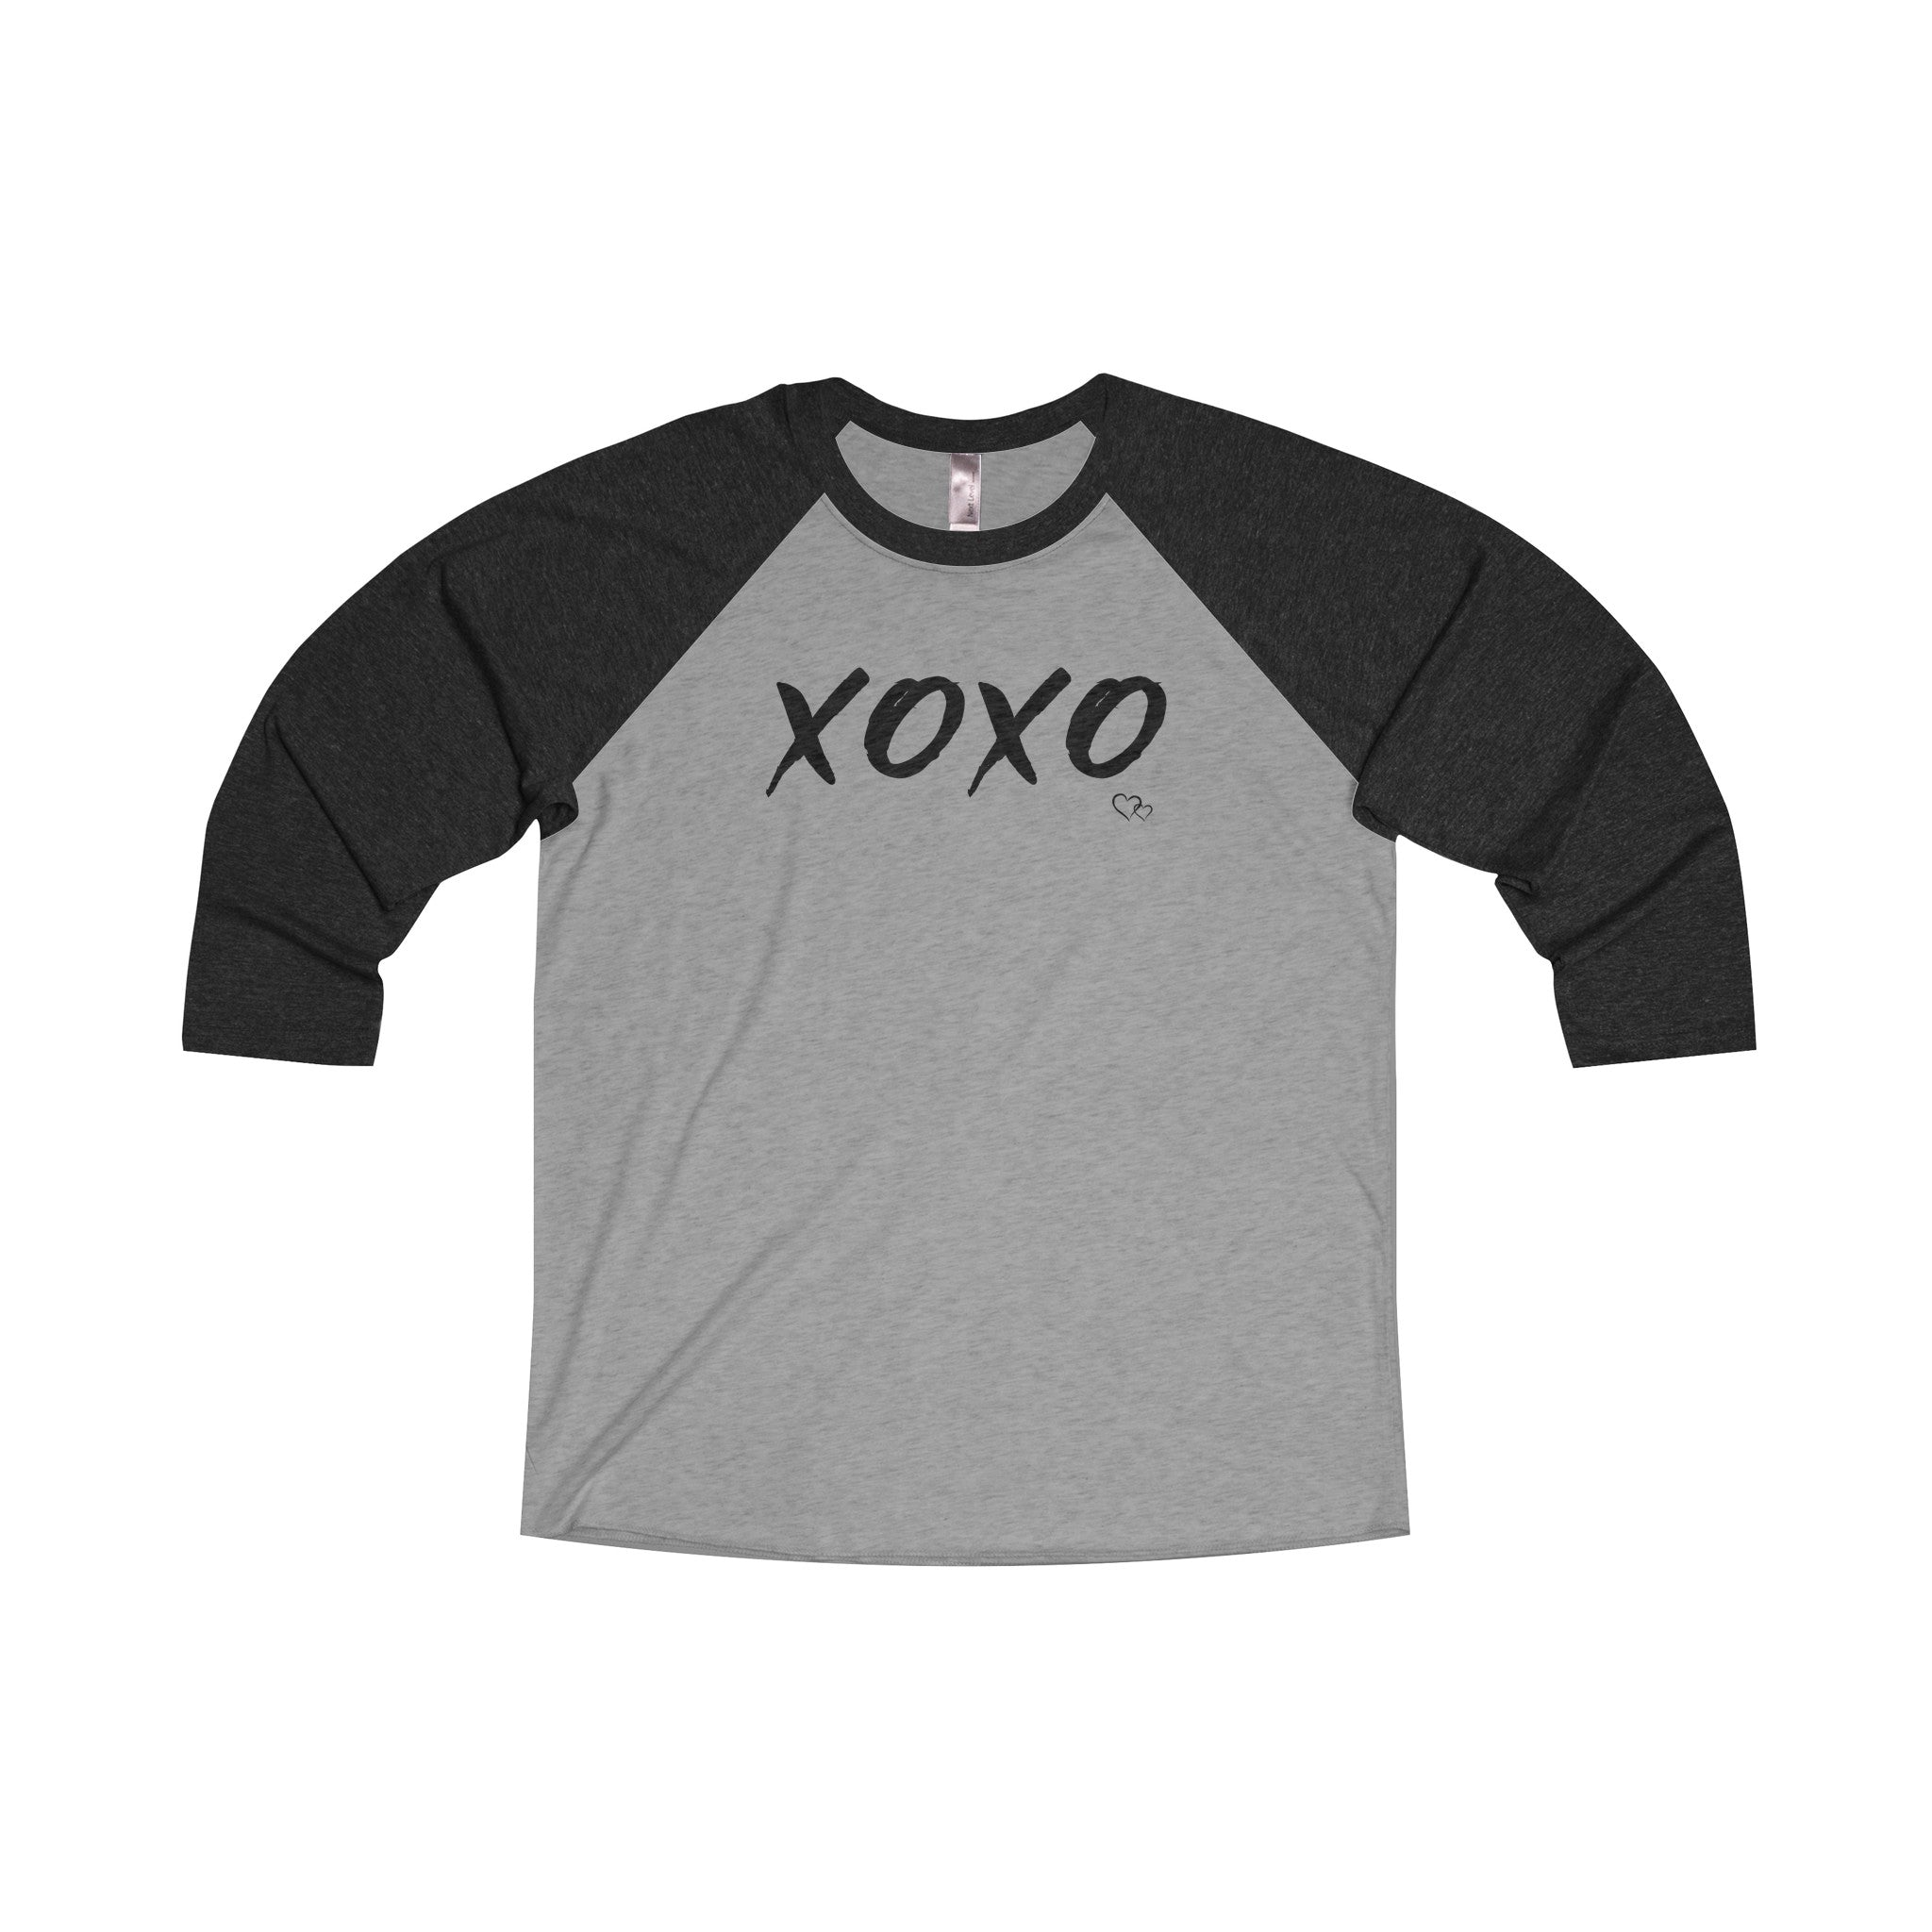 XOXO - Baseball 3/4 Sleeve (Unisex)